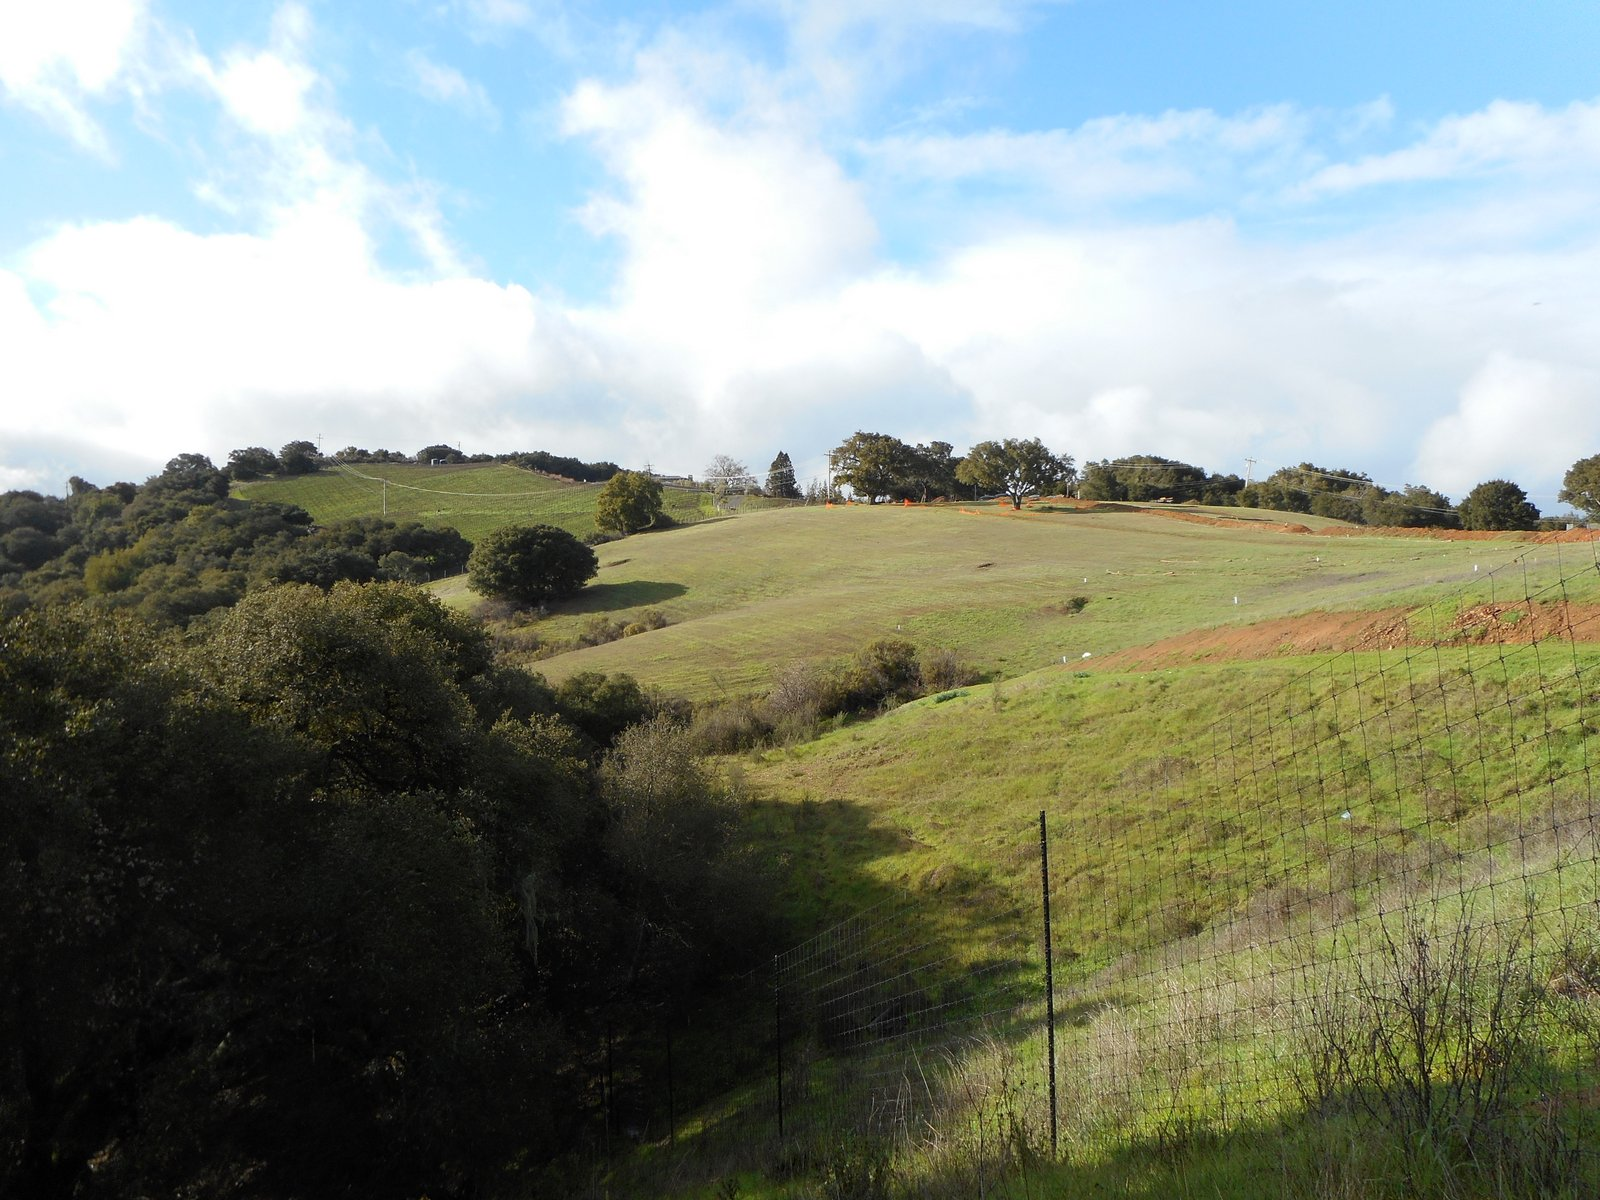 Worm's Hills of Los Gatos